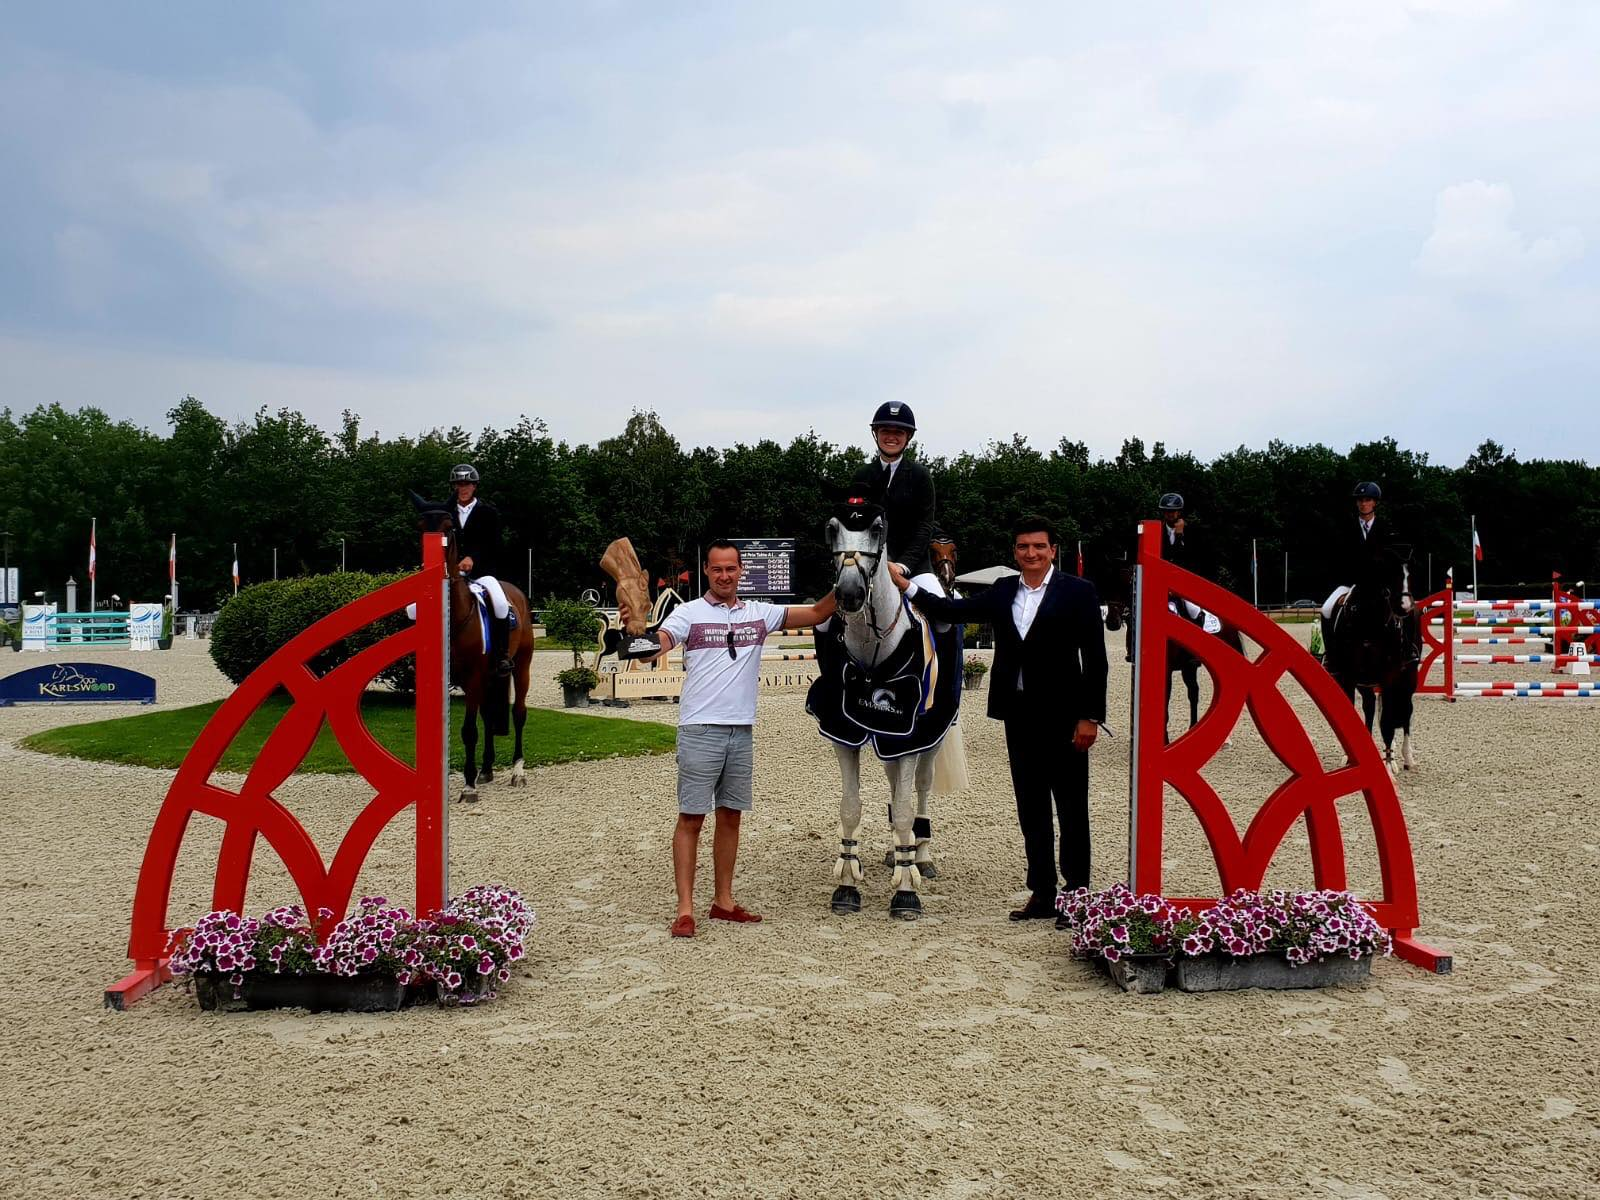 Lillie Keenan flies to victory in Grand Prix at Sentower Park